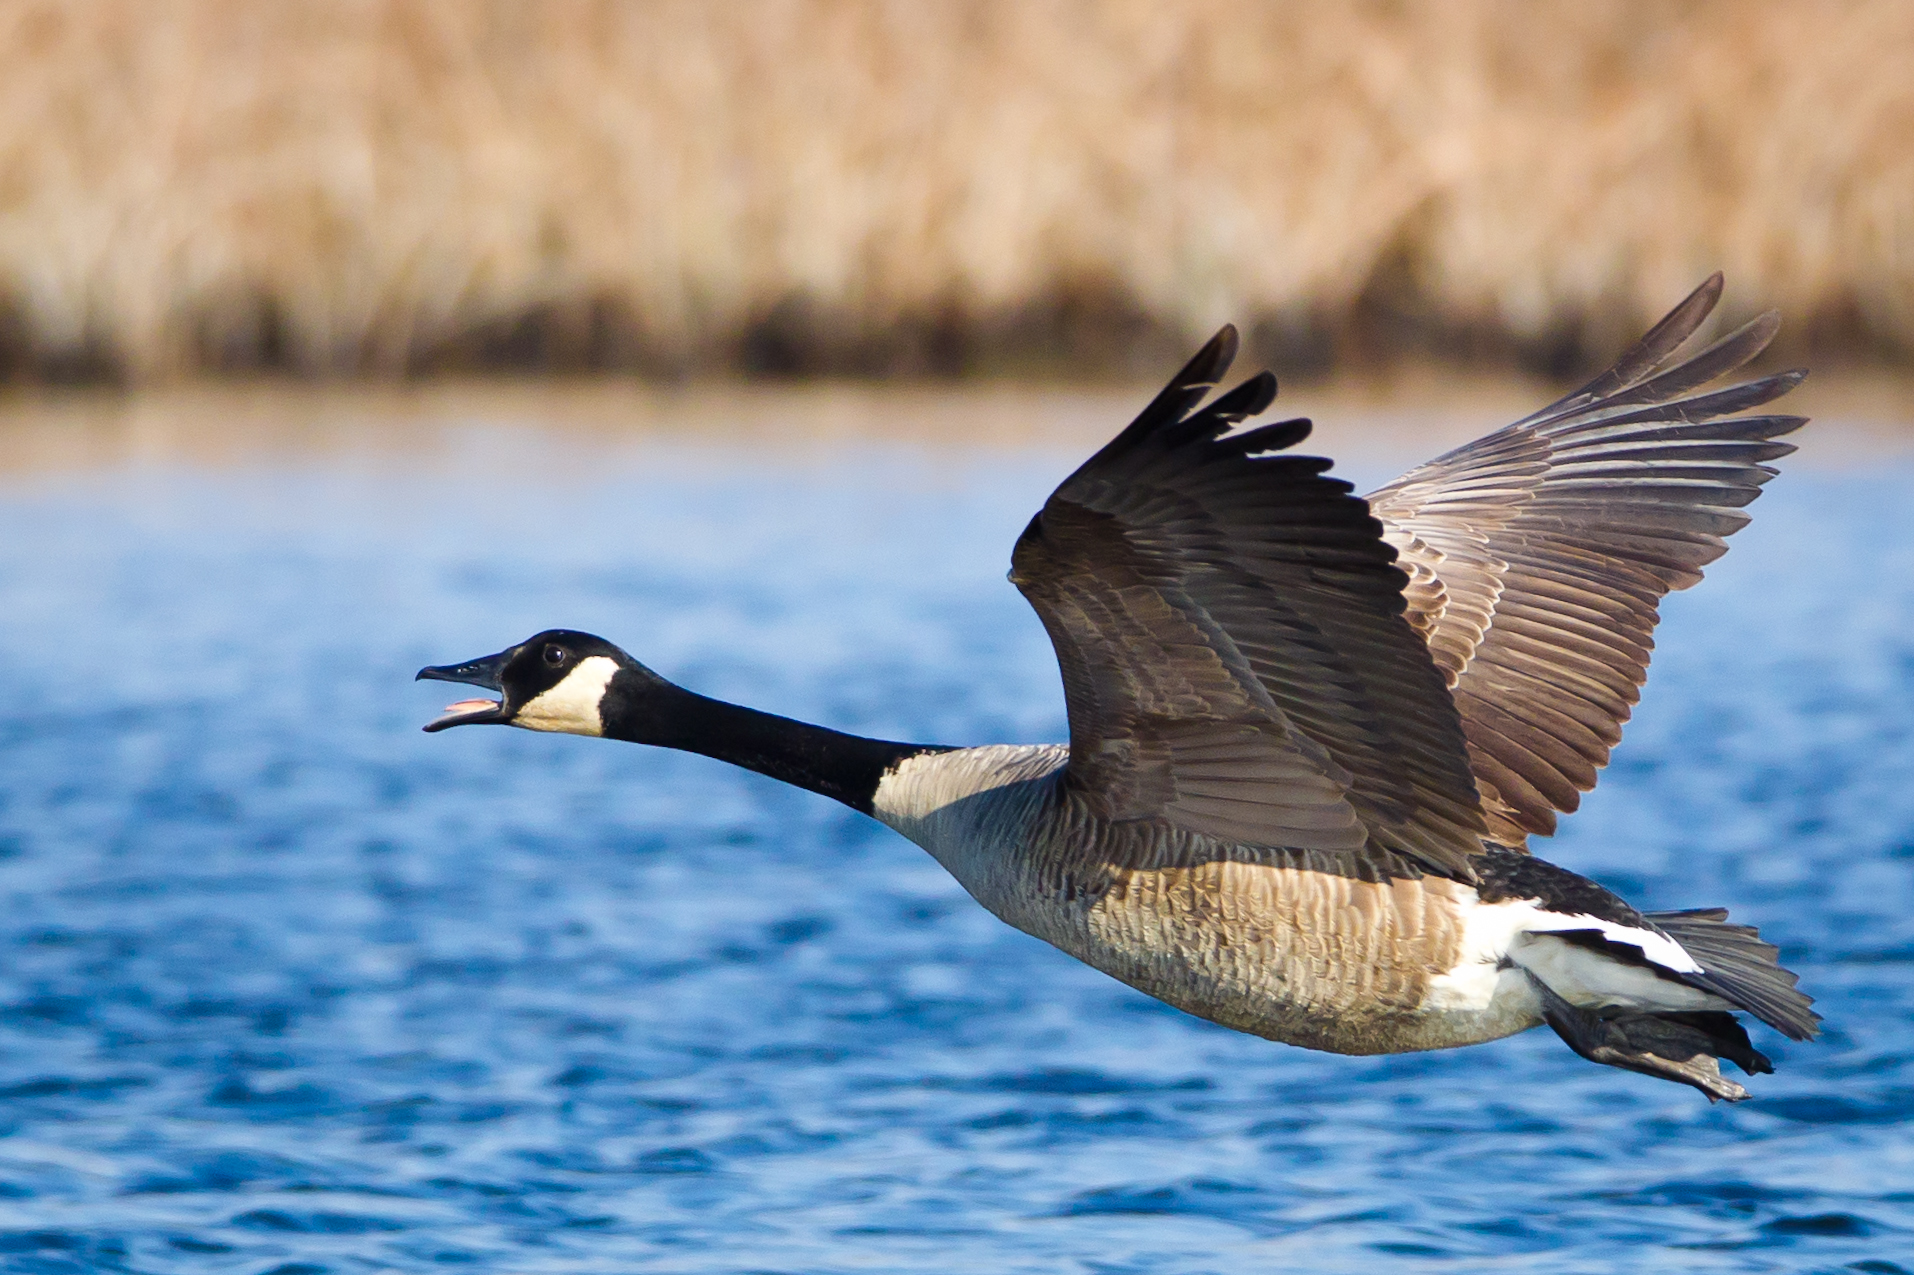 Canadian Goose honking and soaring.